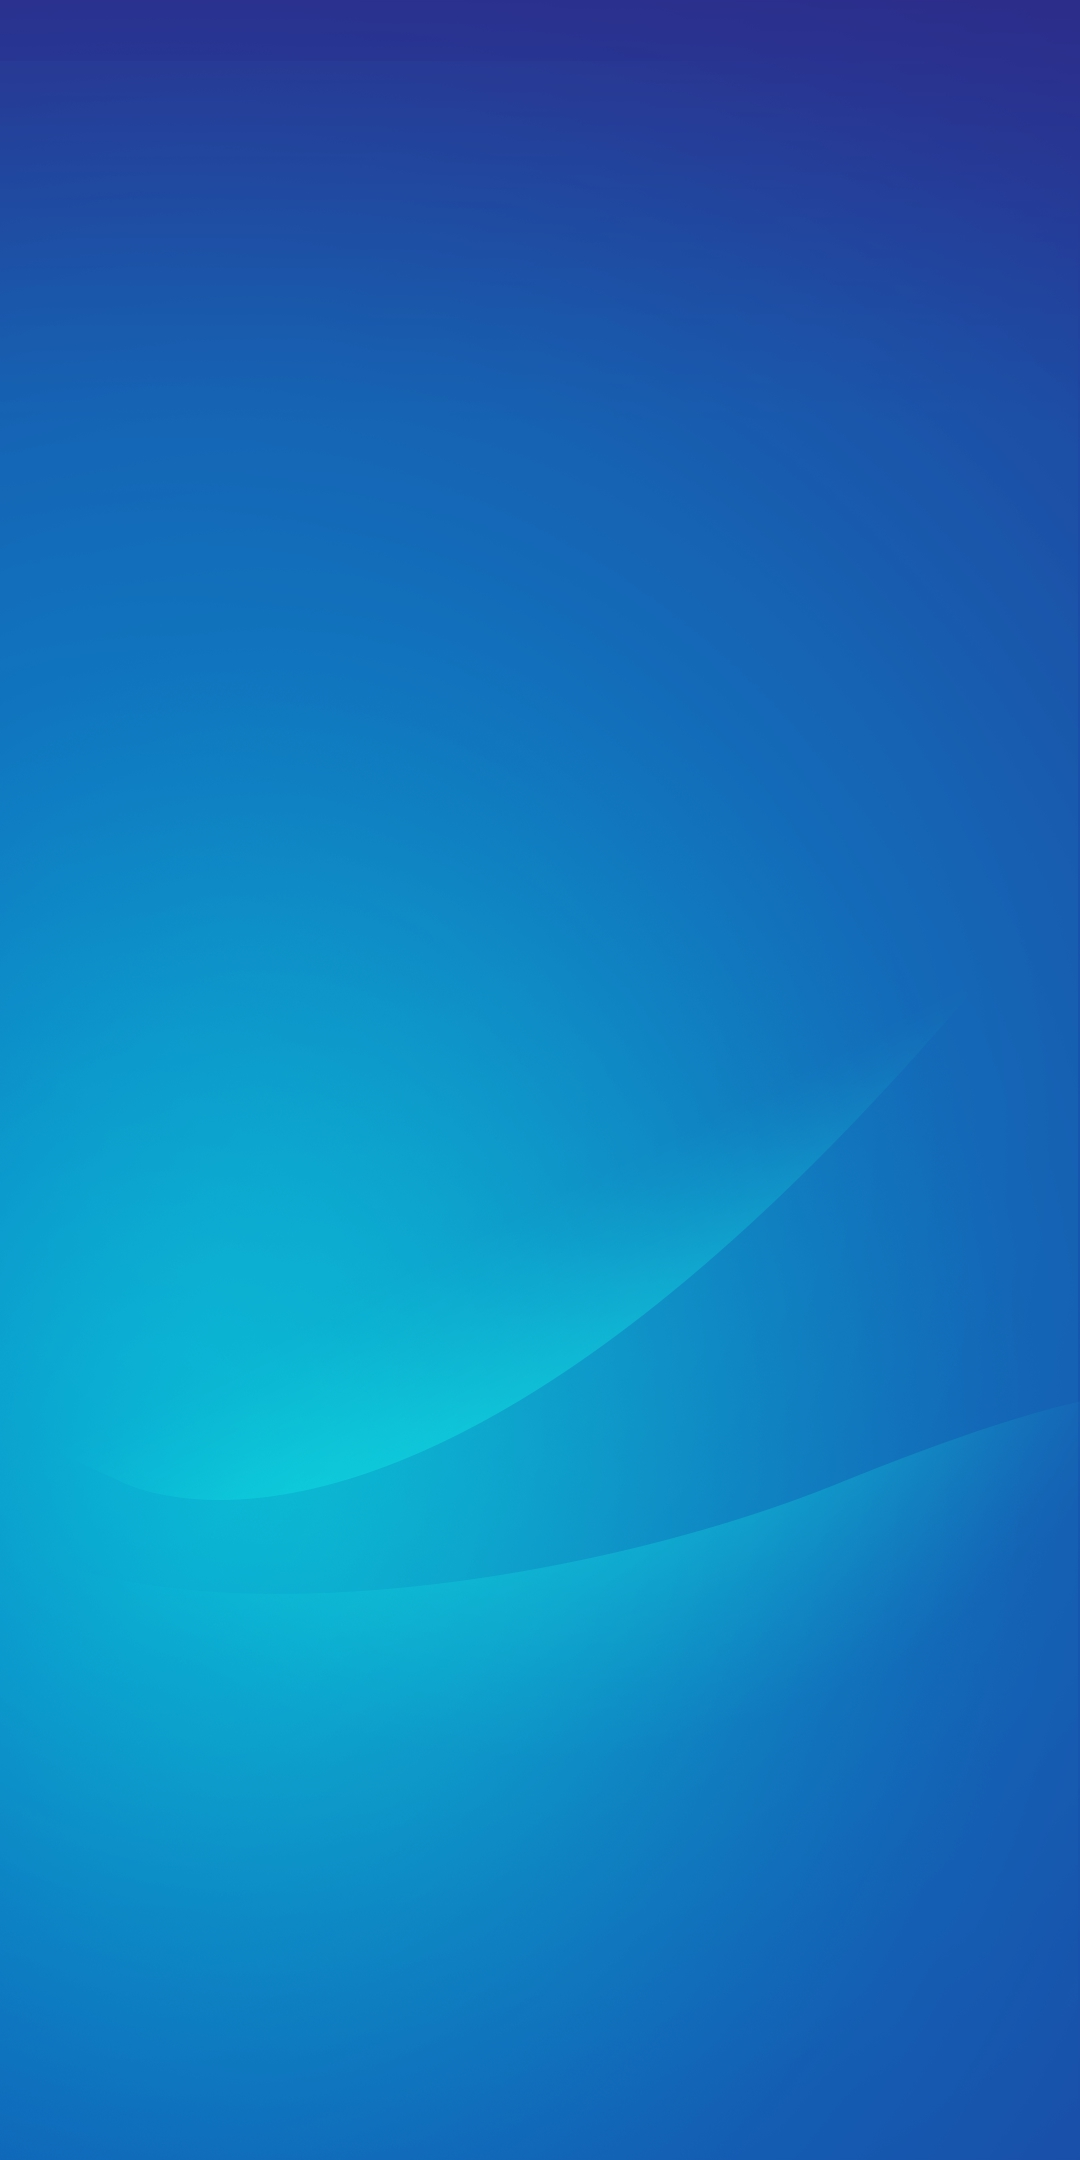 Blue Abstract Background iPhone Wallpaper